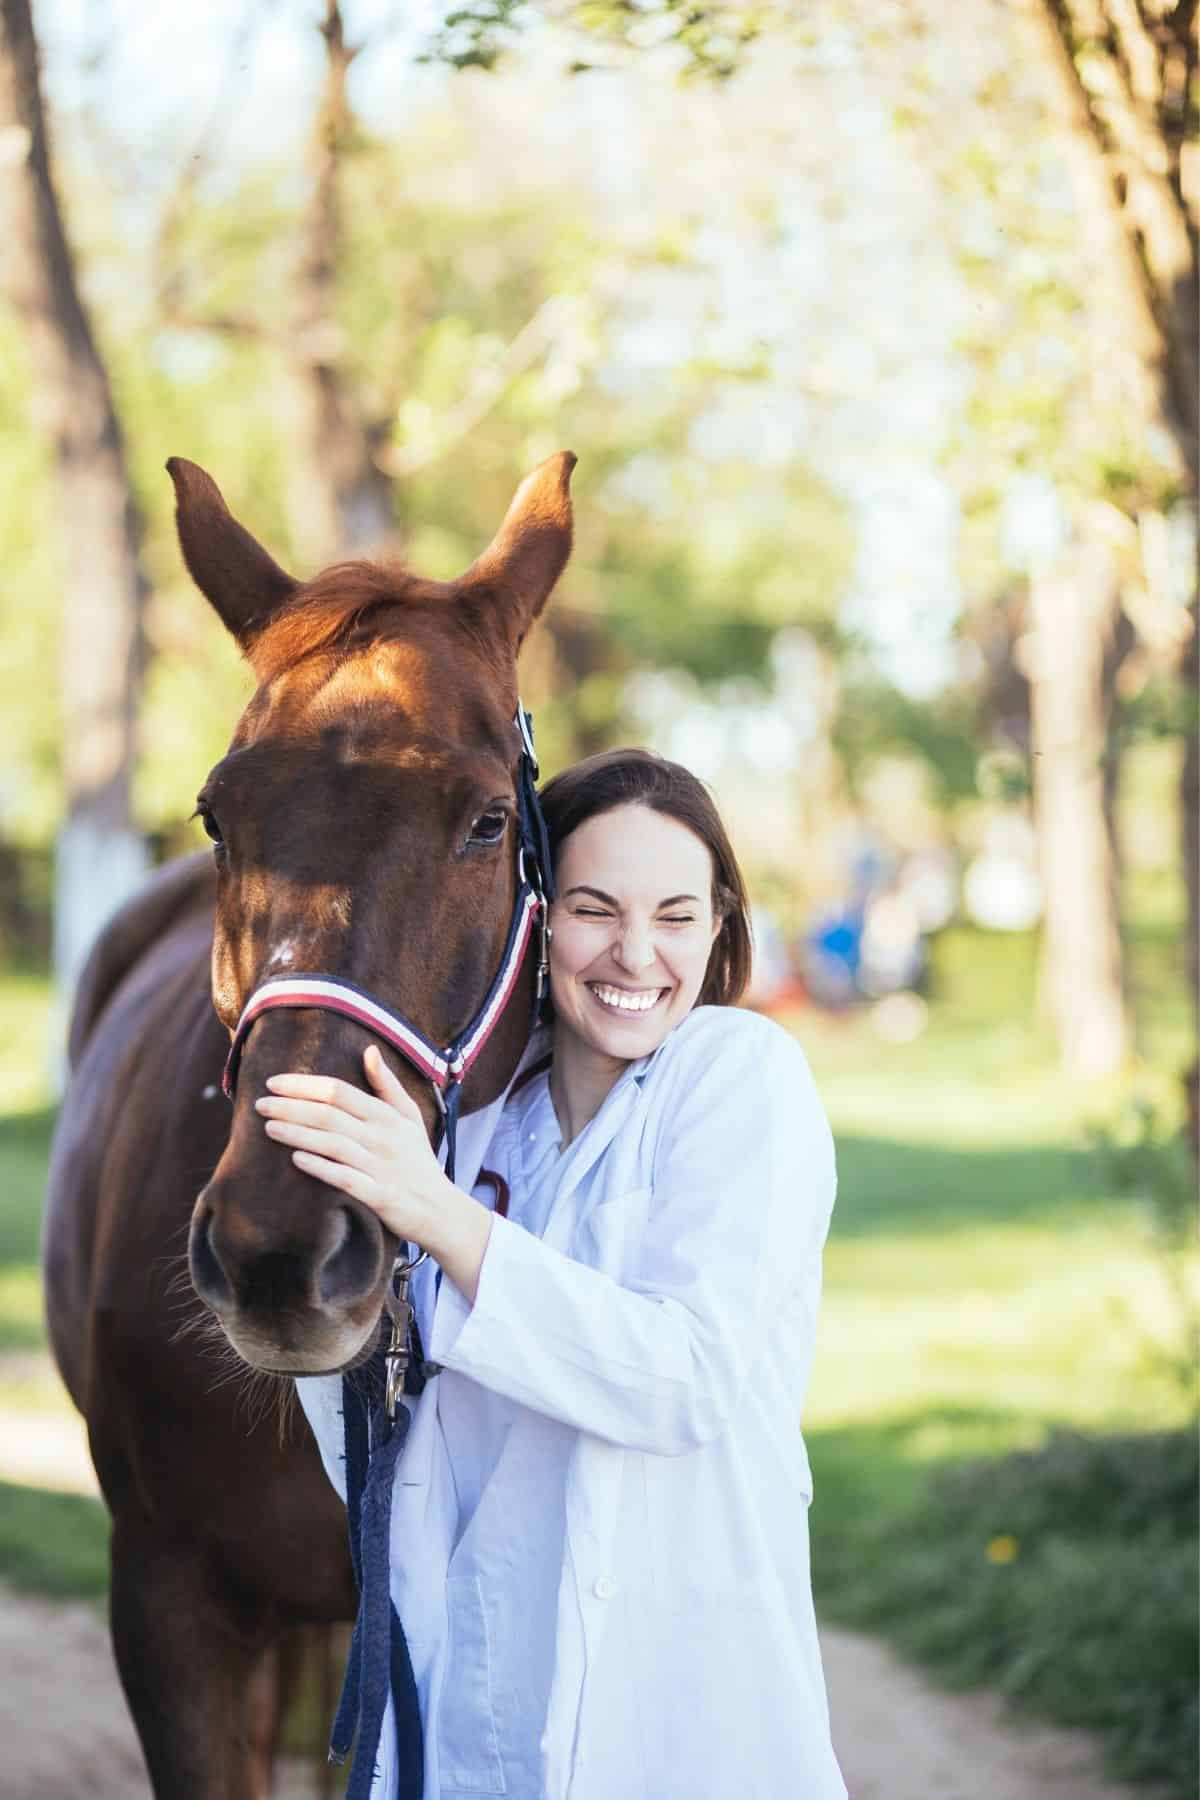 Woman smiling next to brown horse